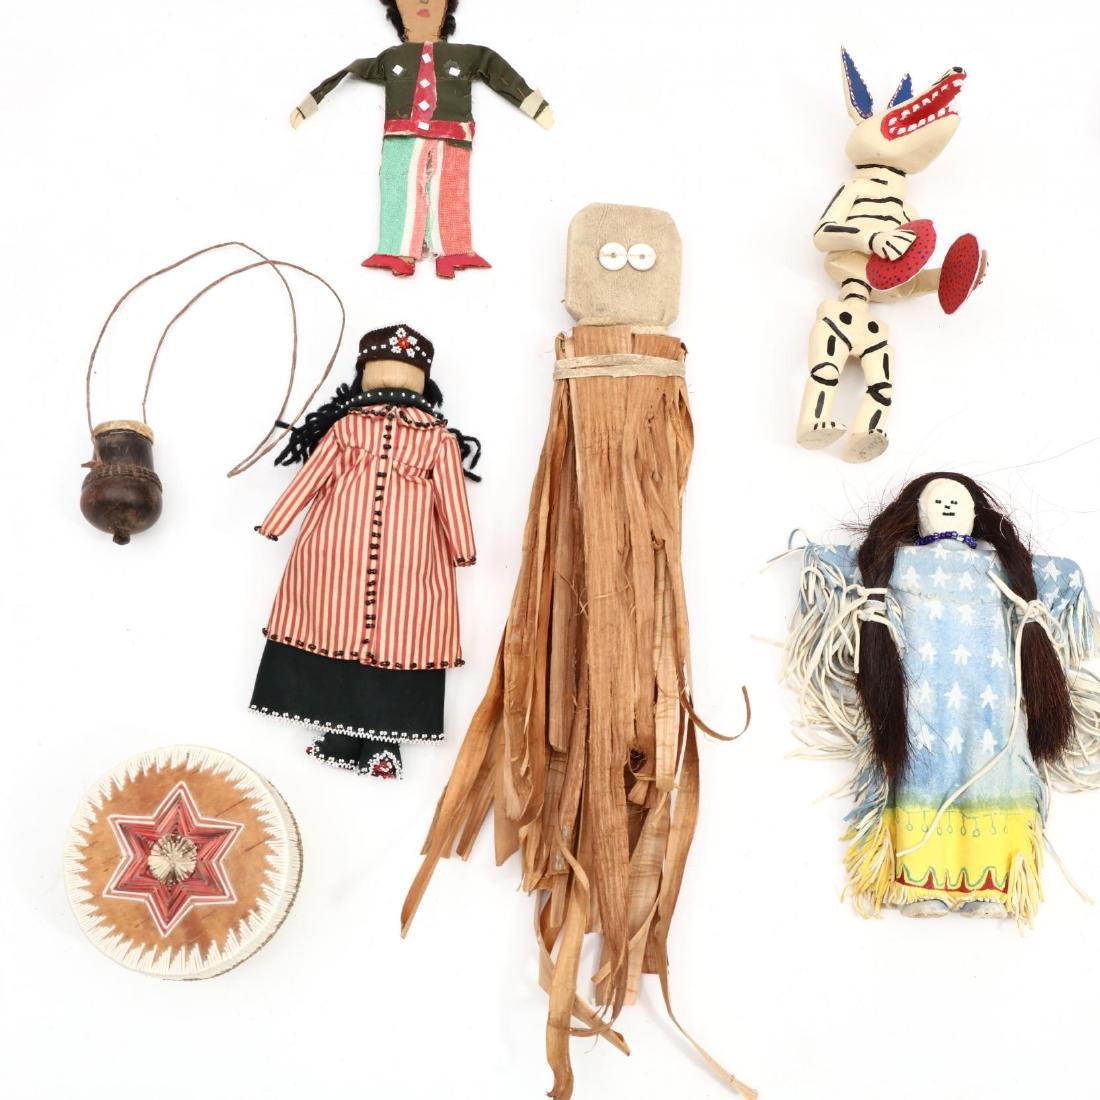 A Group of Ethnic Souvenir Items - 2